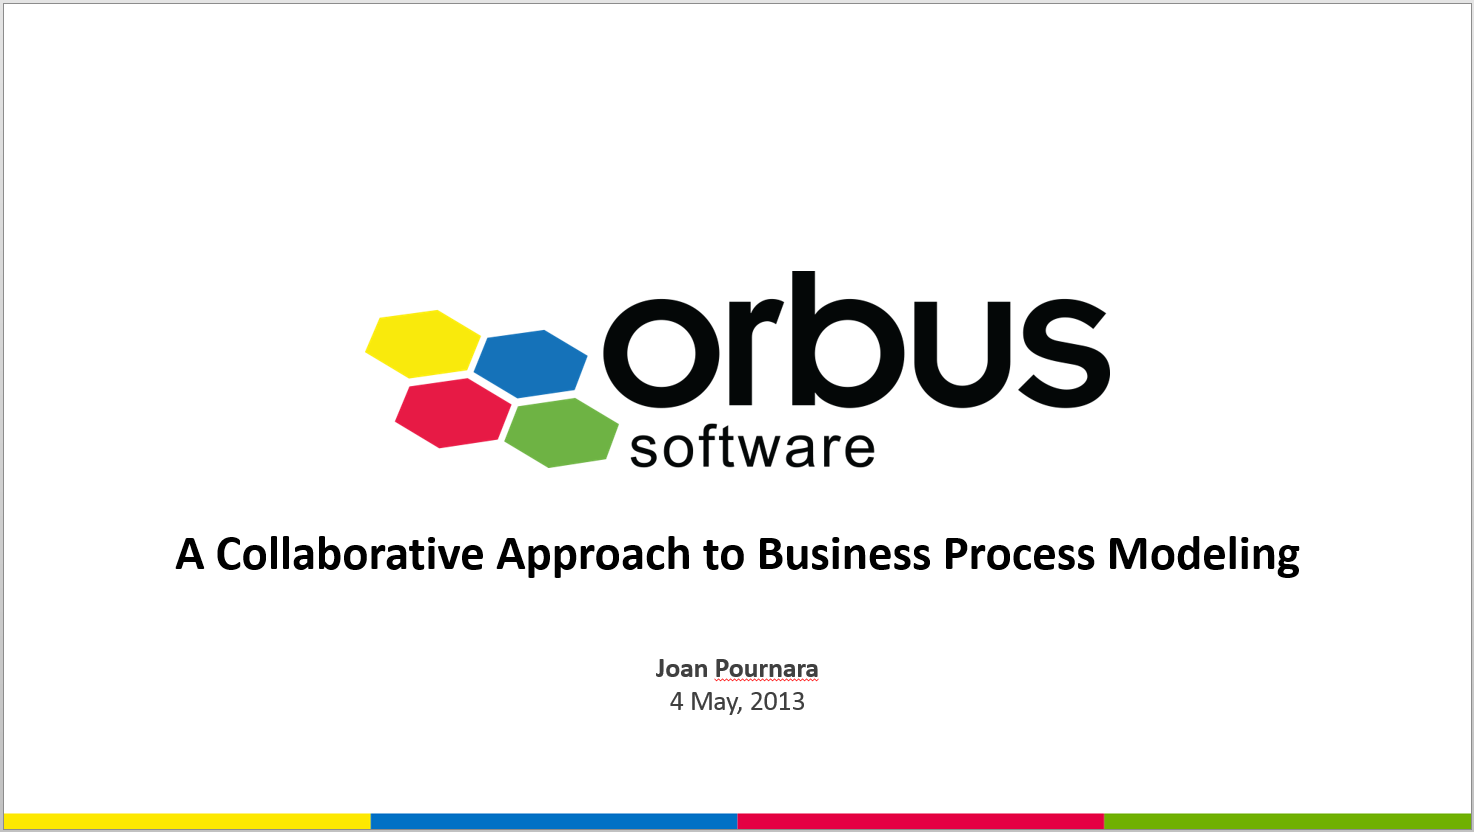 A Collaborative Approach to Business Process Modeling